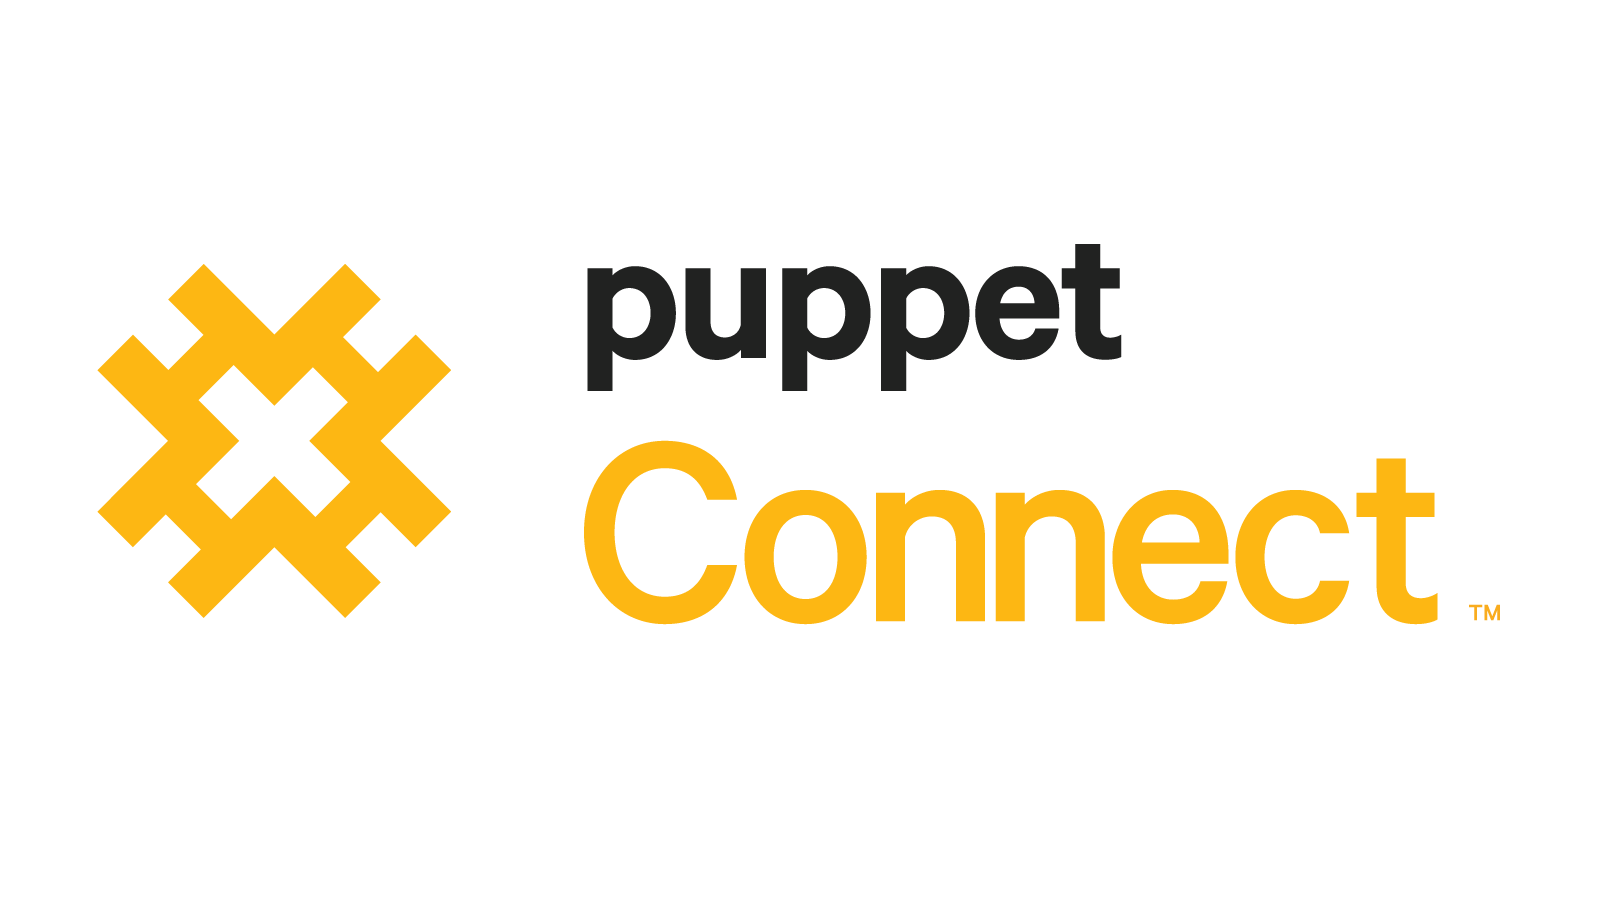 Puppet Connect logo